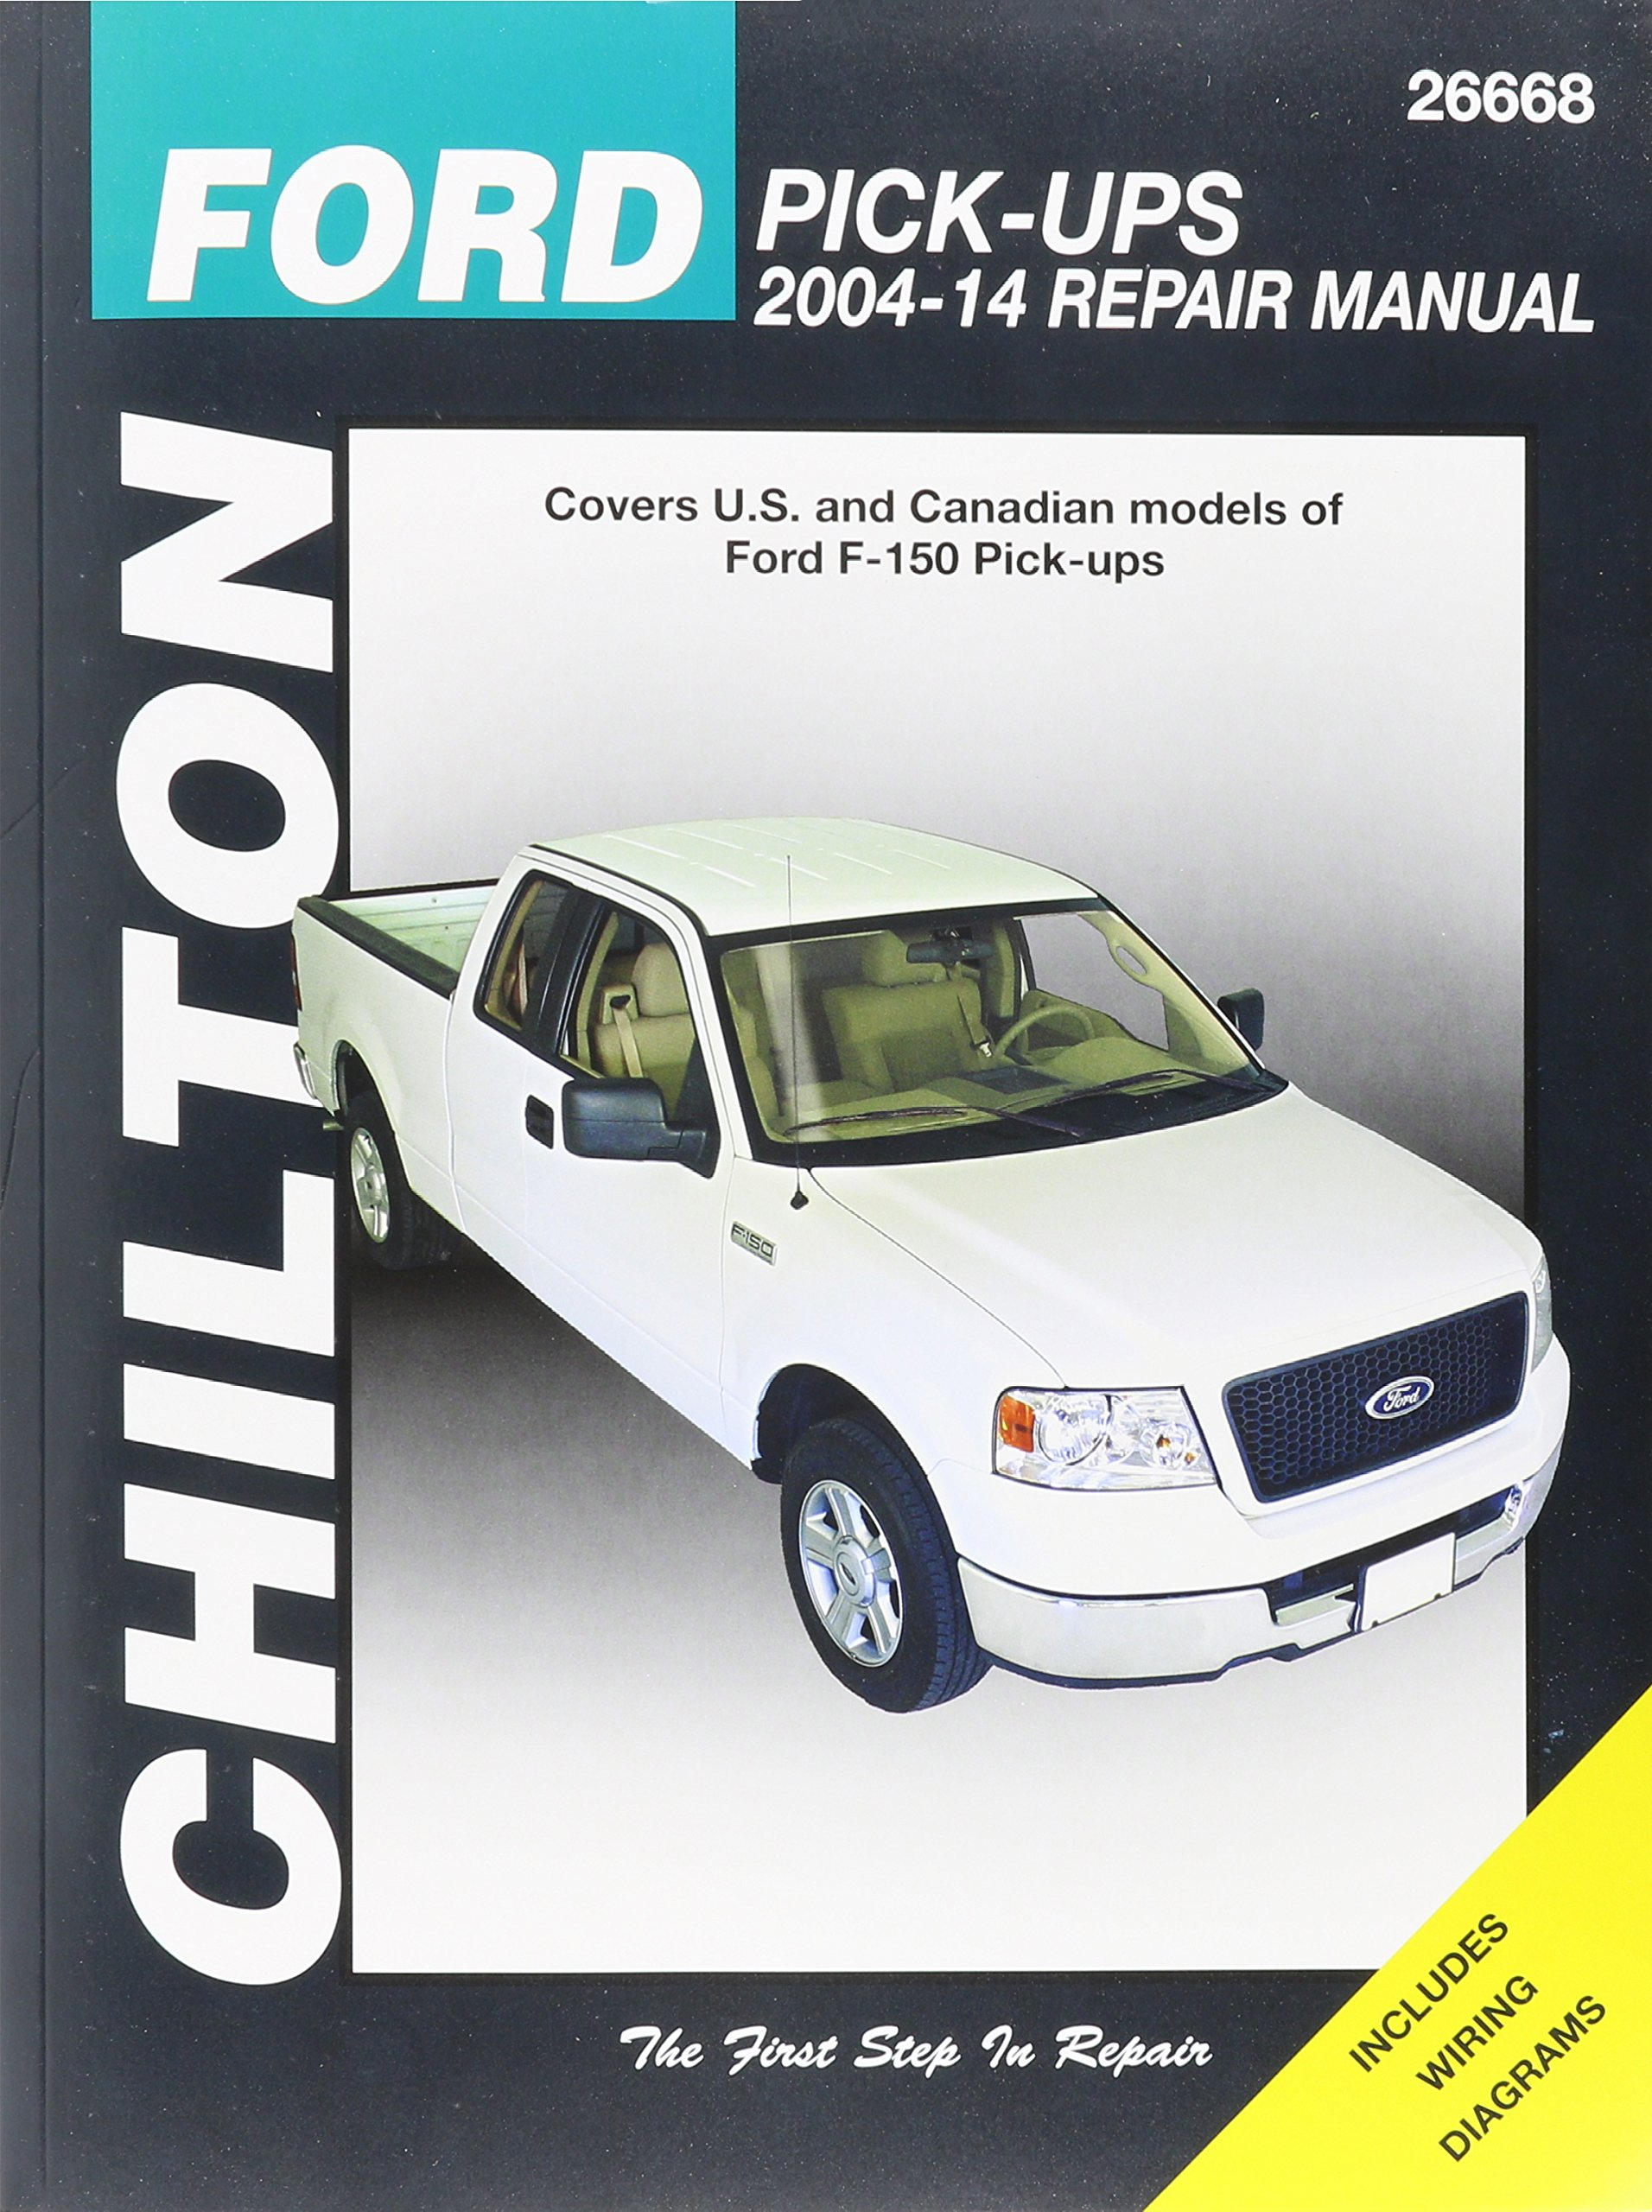 Chilton Ford Pick-Ups 2004-14 Repair Manual: Covers U.S. and Canadian  models of Ford F-150 Pick-ups 2004 through 2014: Does no include F-250,  Super .